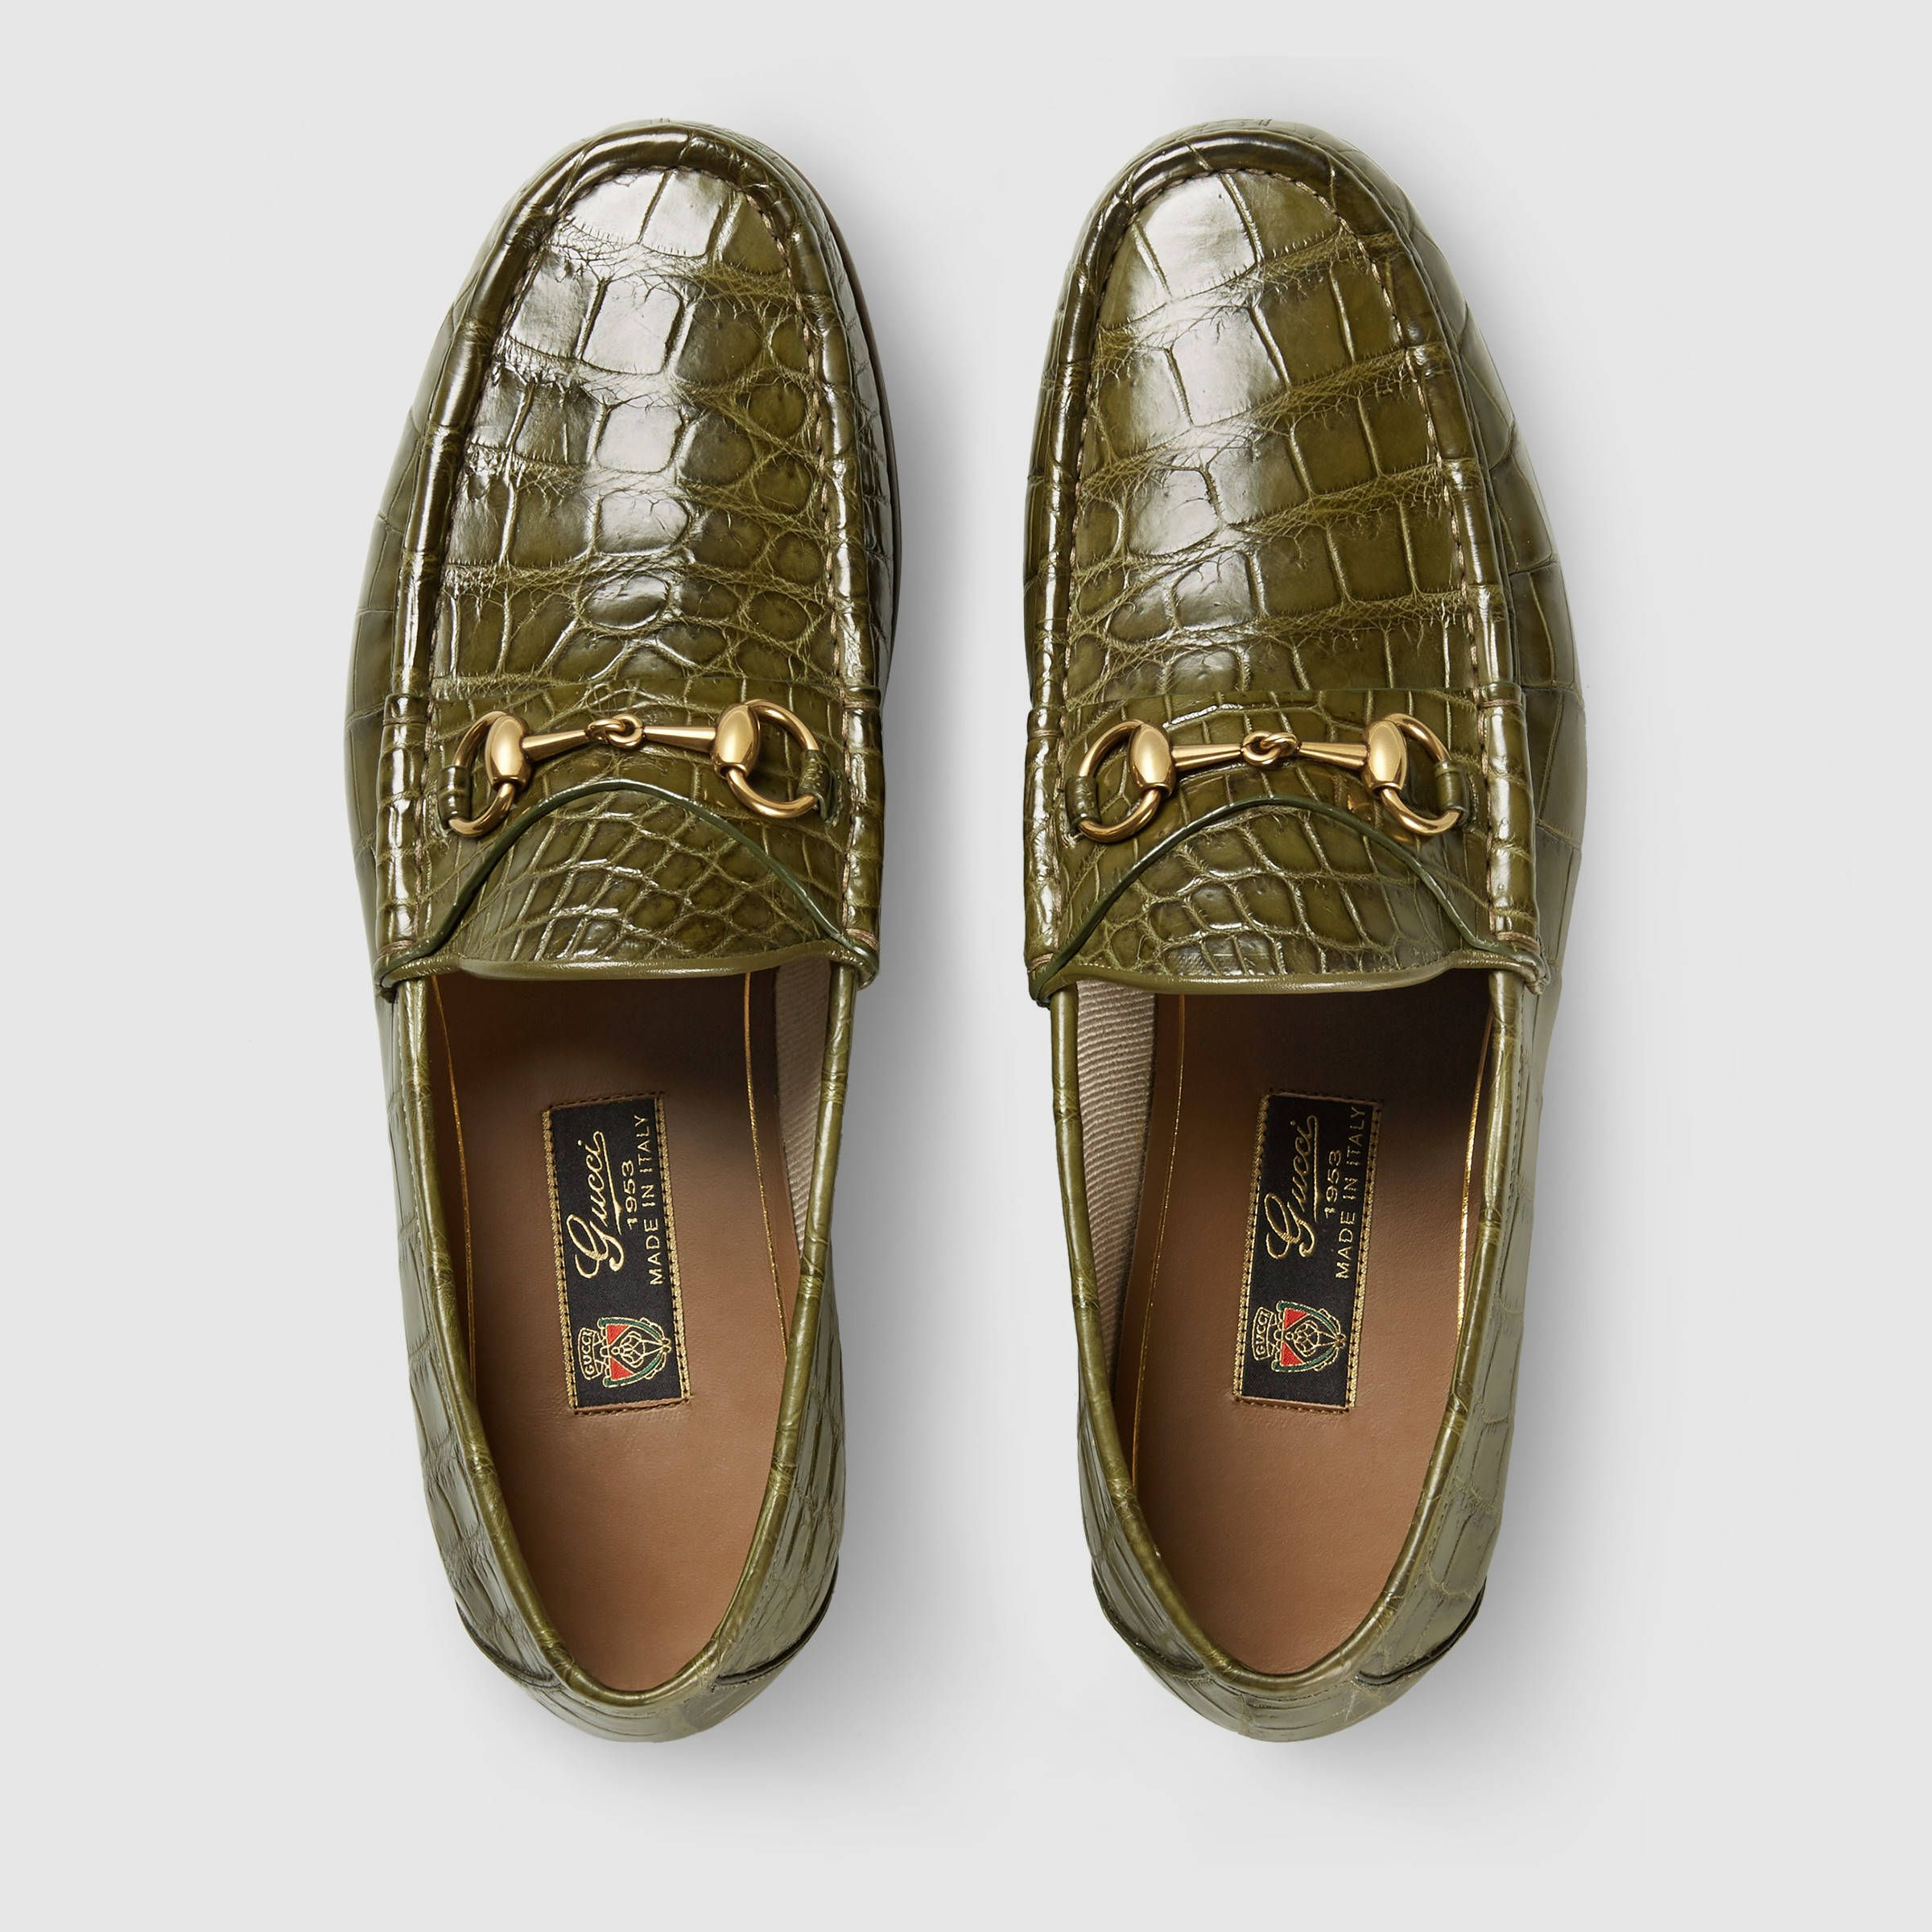 91c111ff5 Gucci Horsebit olive green croc loafer | All Men Everything in 2019 ...